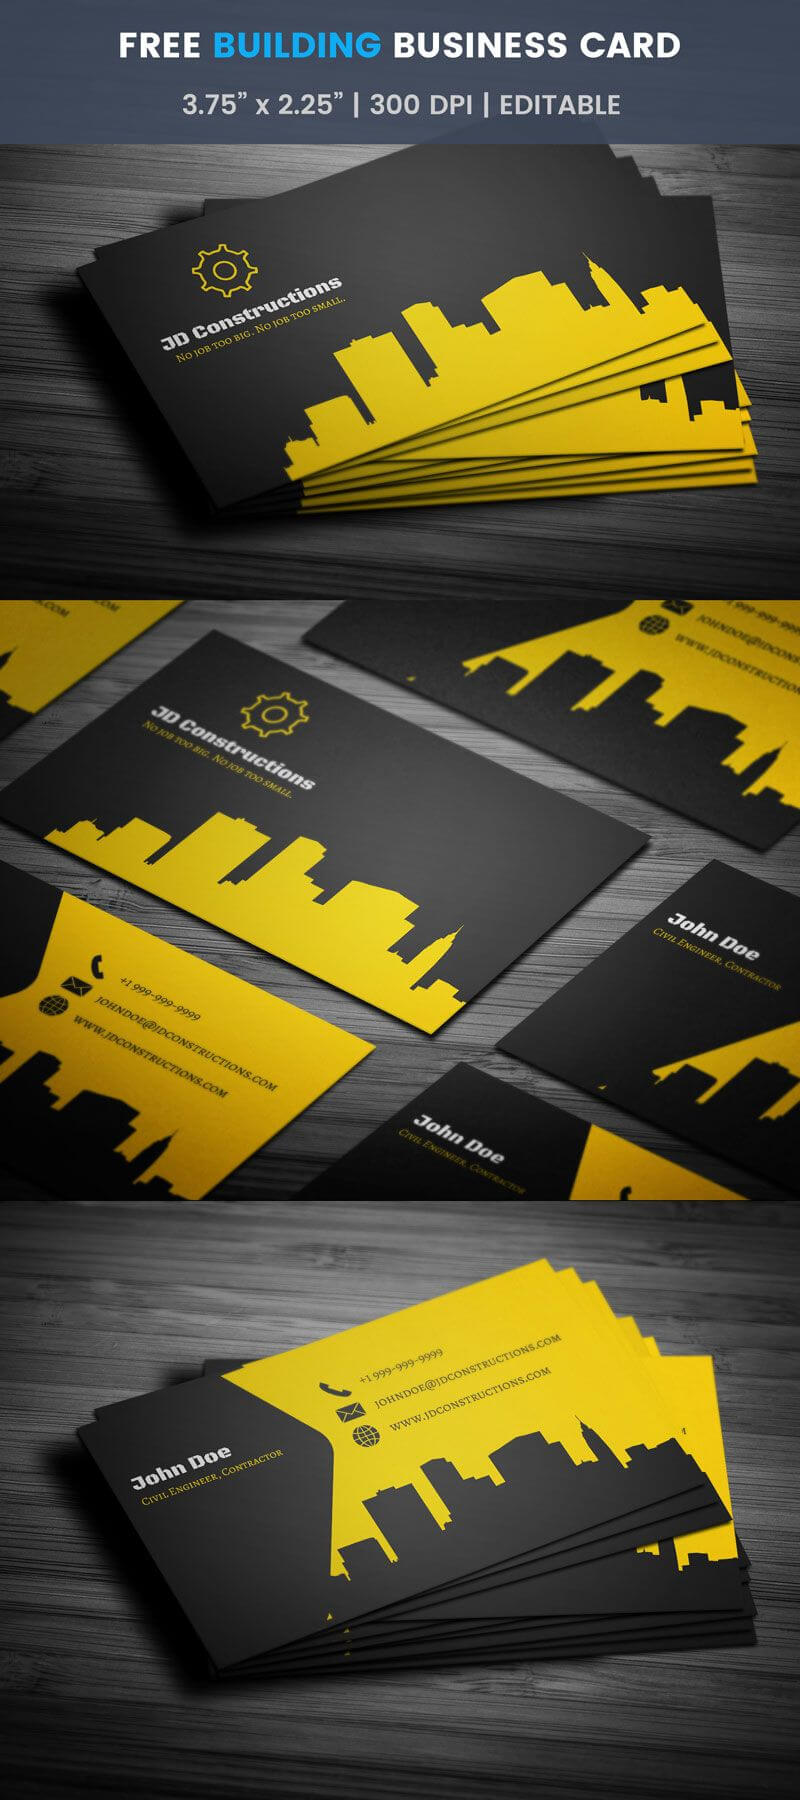 Free Construction Business Card Template Word Visiting with Construction Business Card Templates Download Free